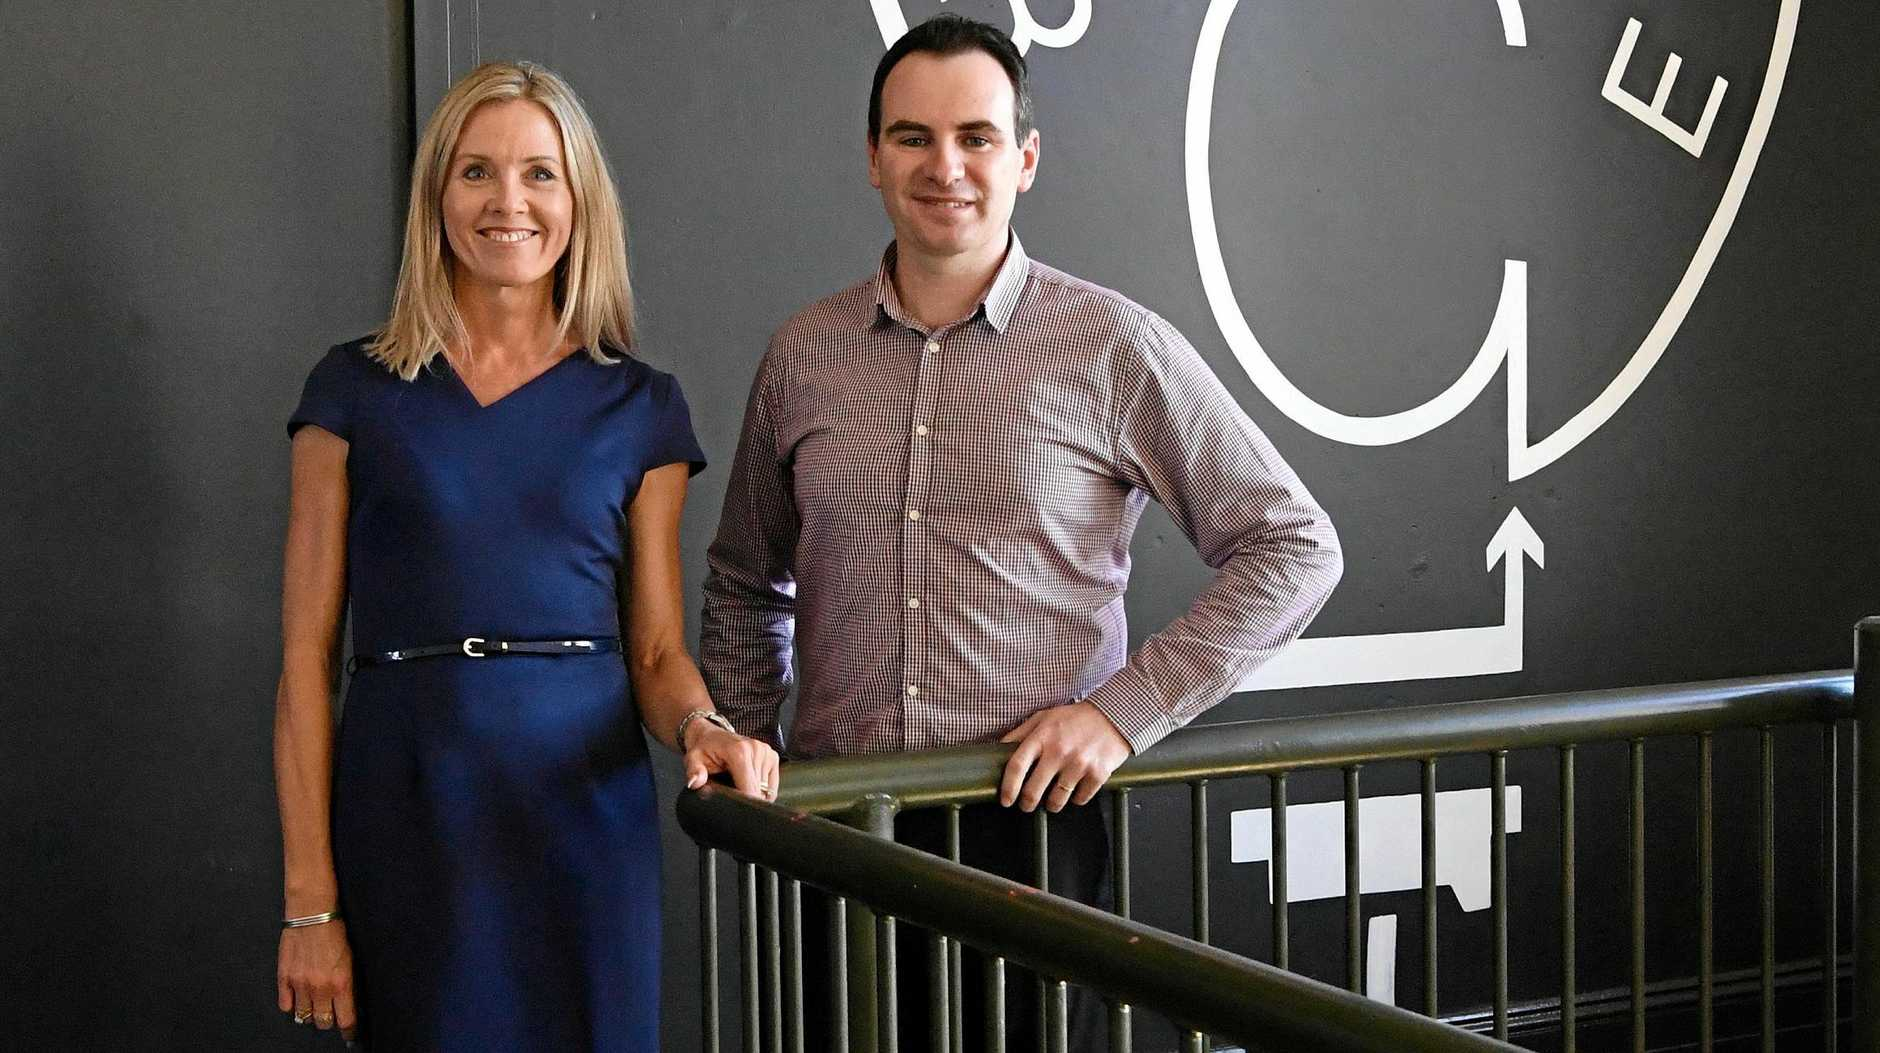 FLYING VISIT: Tanya O'Shea and Marcus McCormick are going to Silicon Valley, where they will get the chance to meet industry leaders.